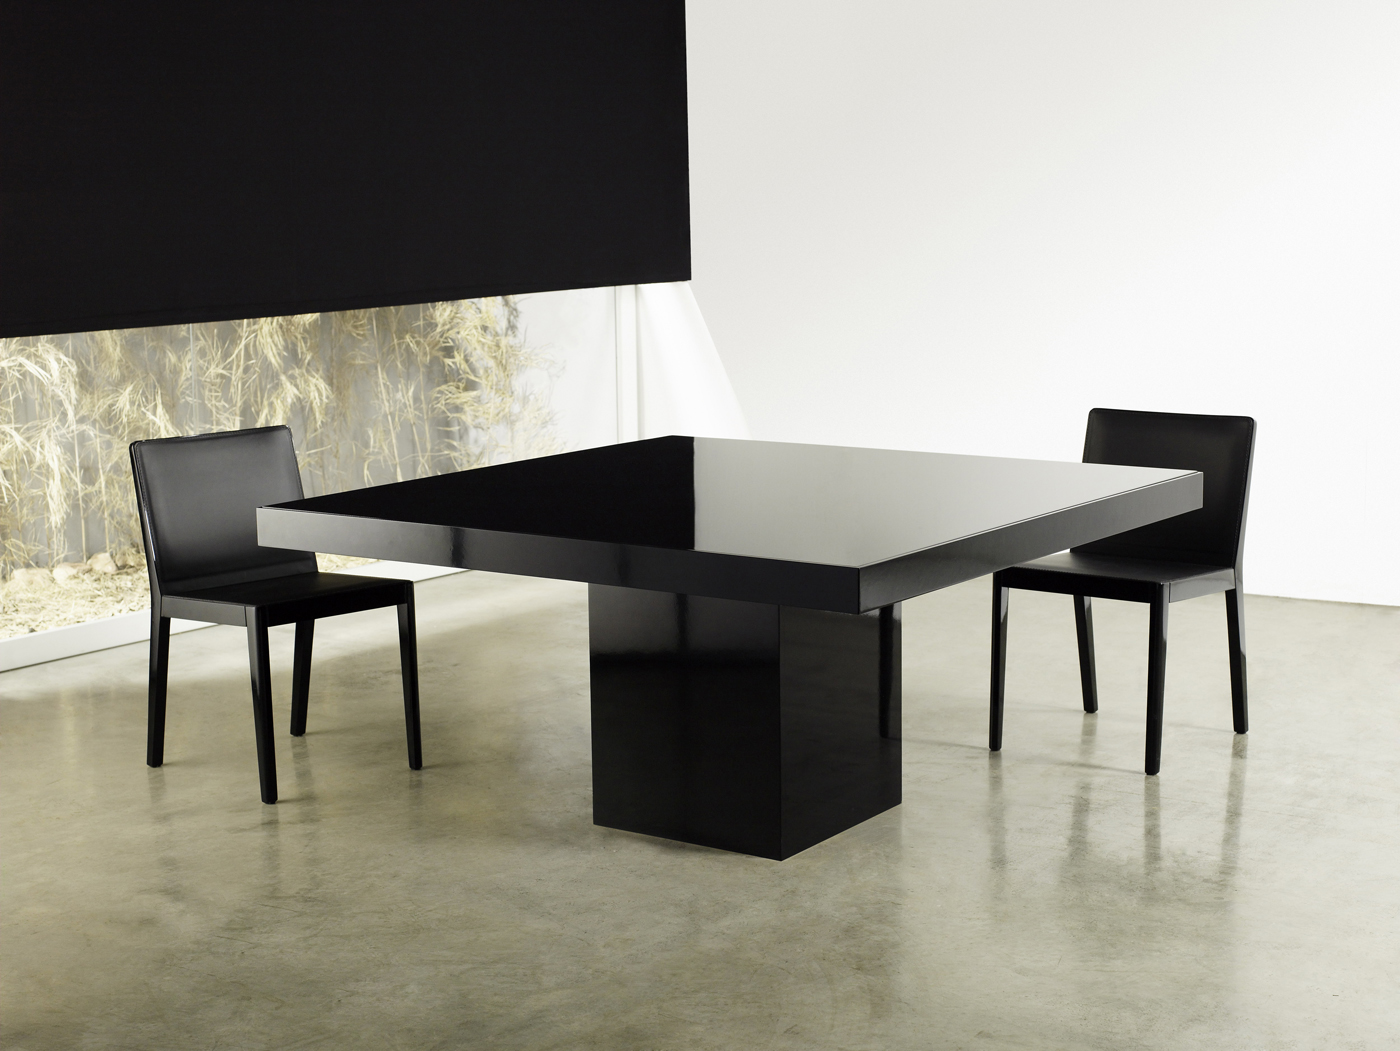 square dining table contemporary photo - 1